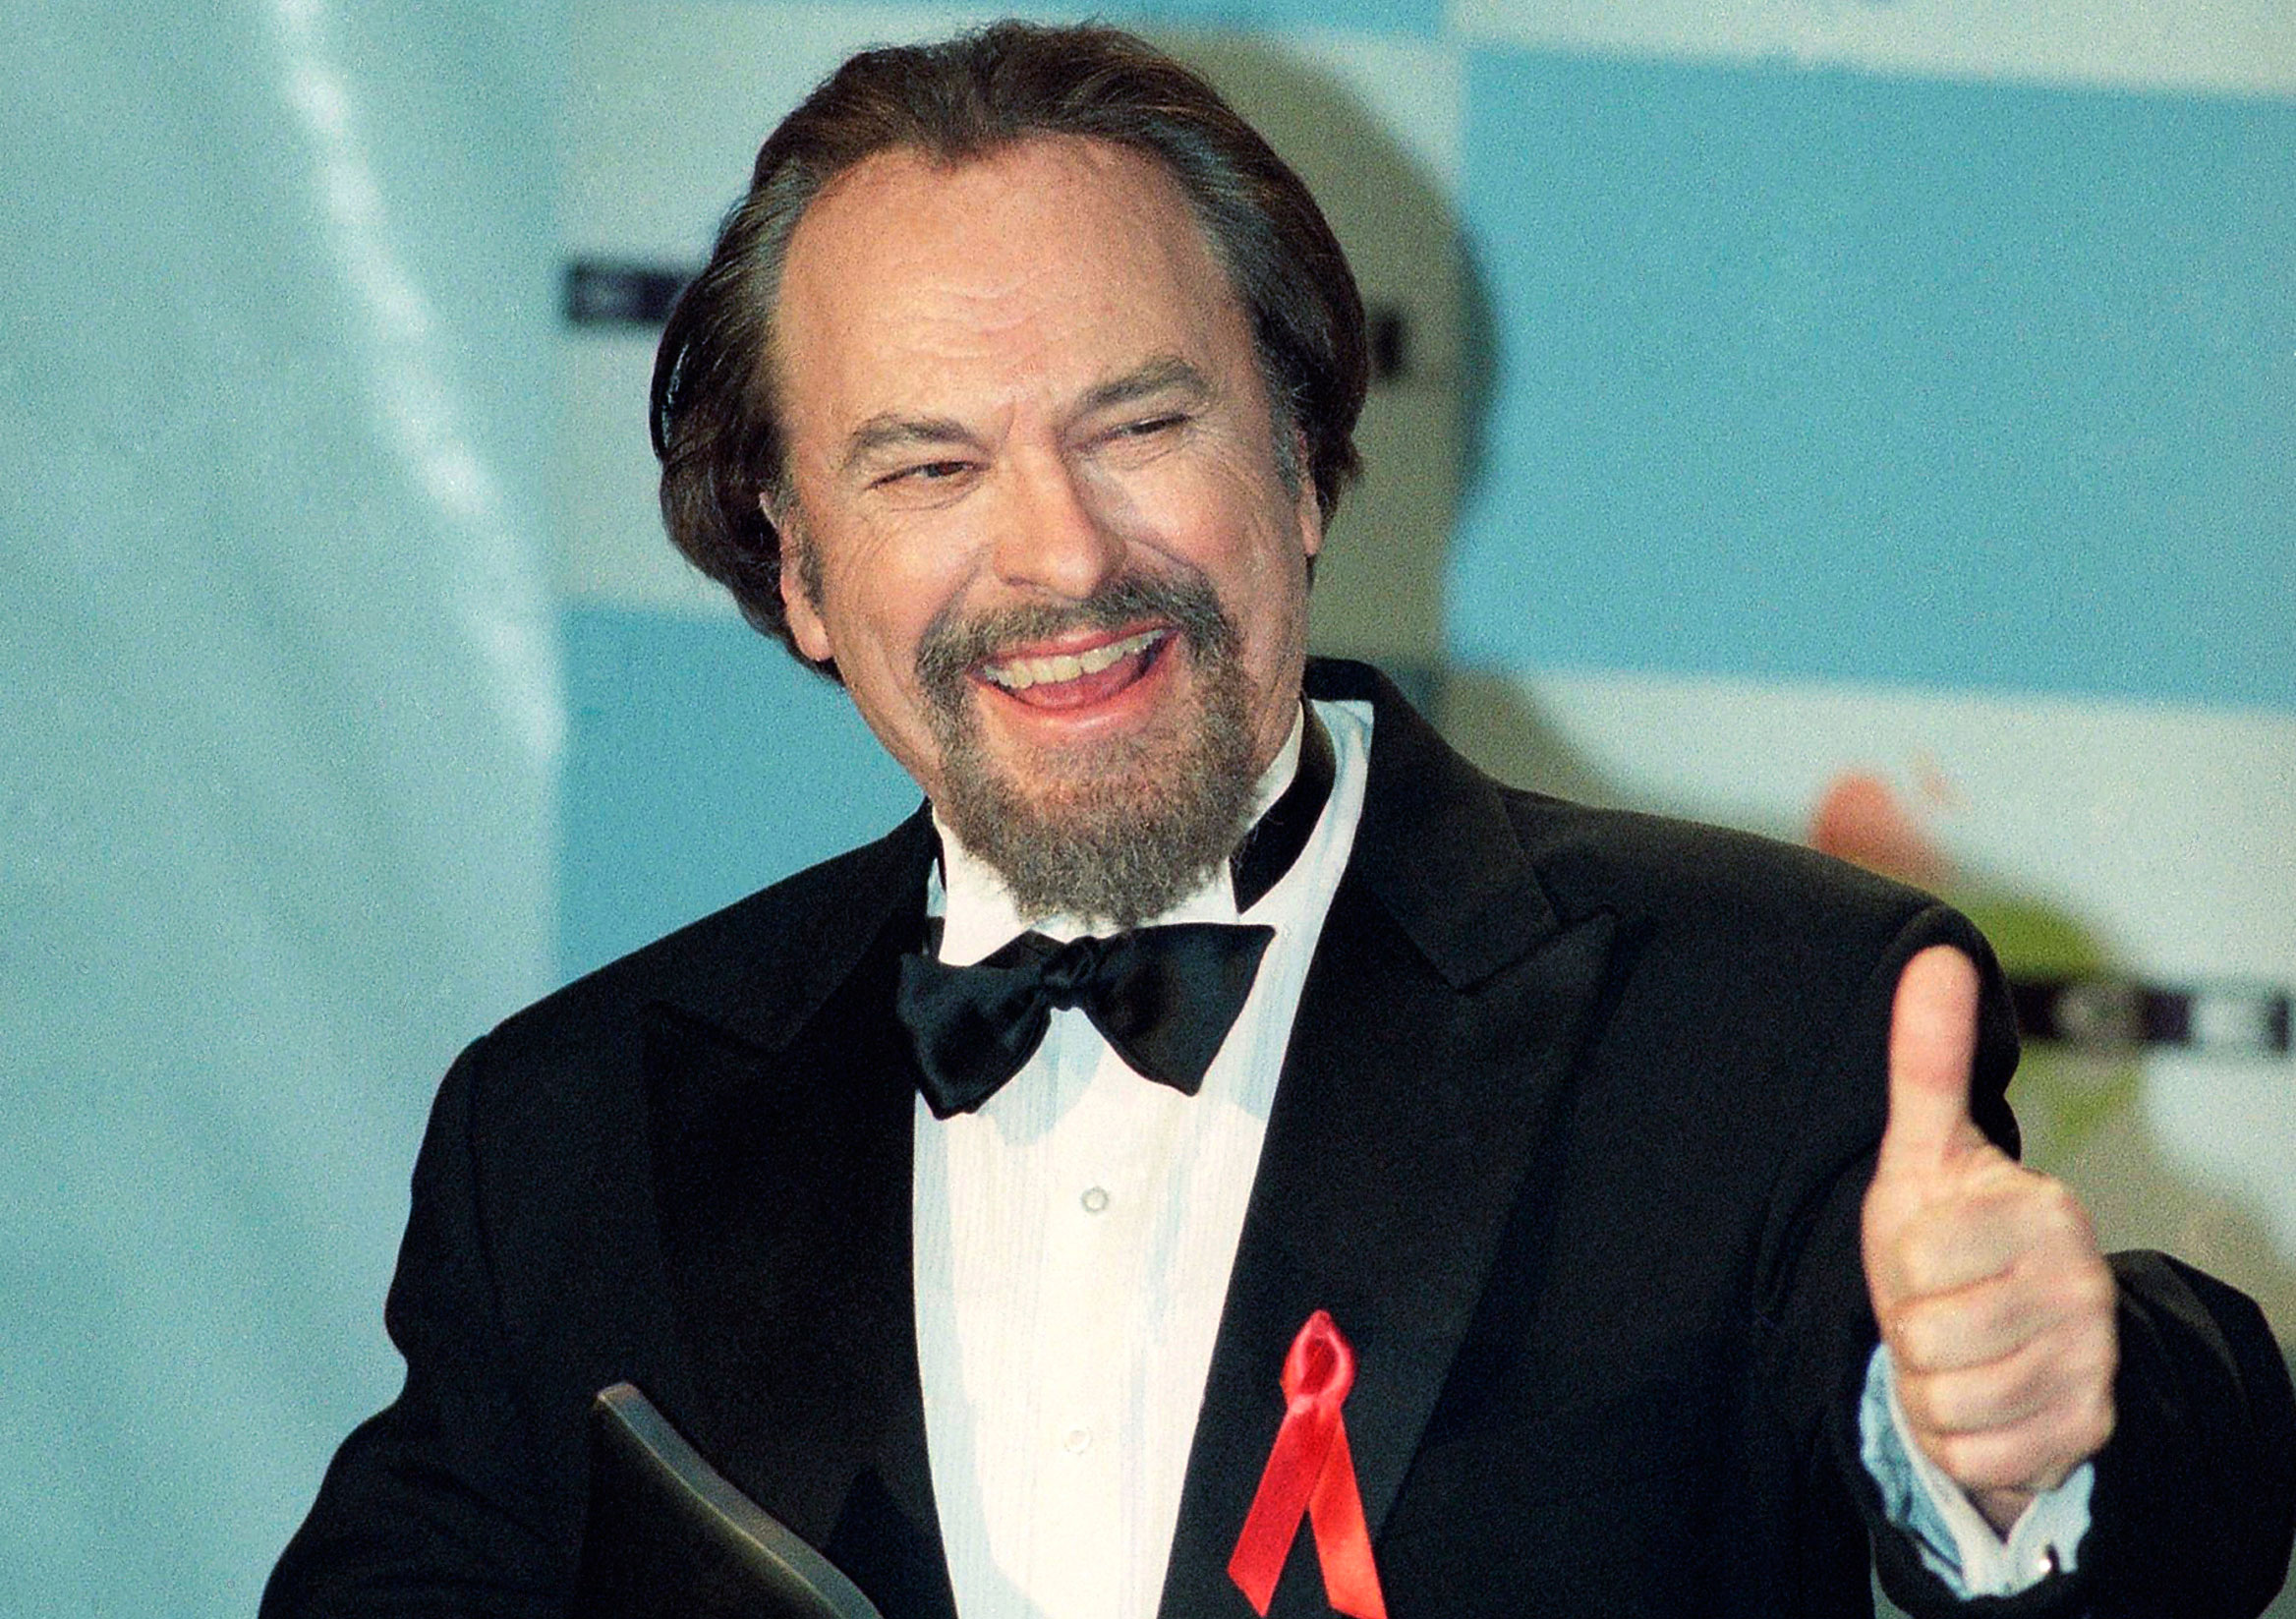 In this January 15, 1995, file photo, Rip Torn gives a thumbs-up after winning for Best Actor in a Comedy Series for HBO's